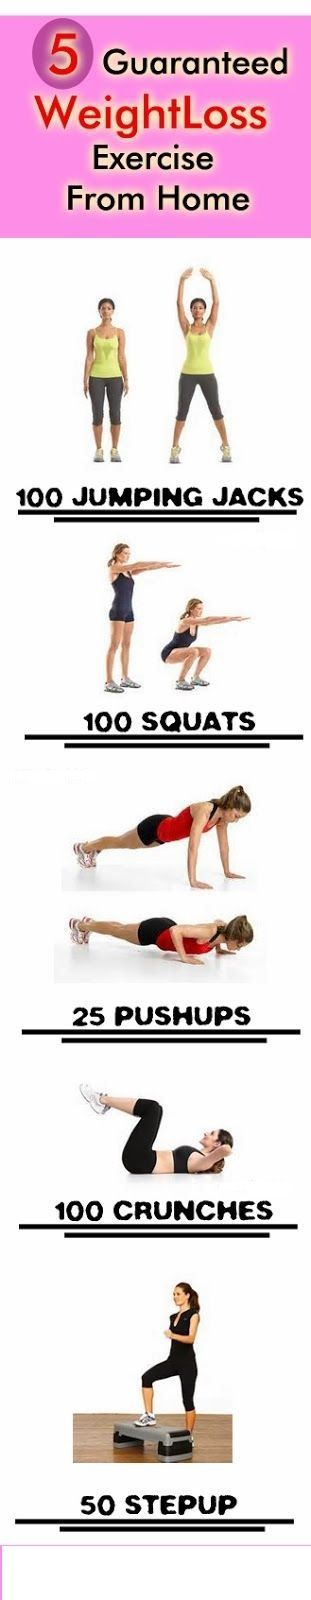 Best images about health on pinterest day squat